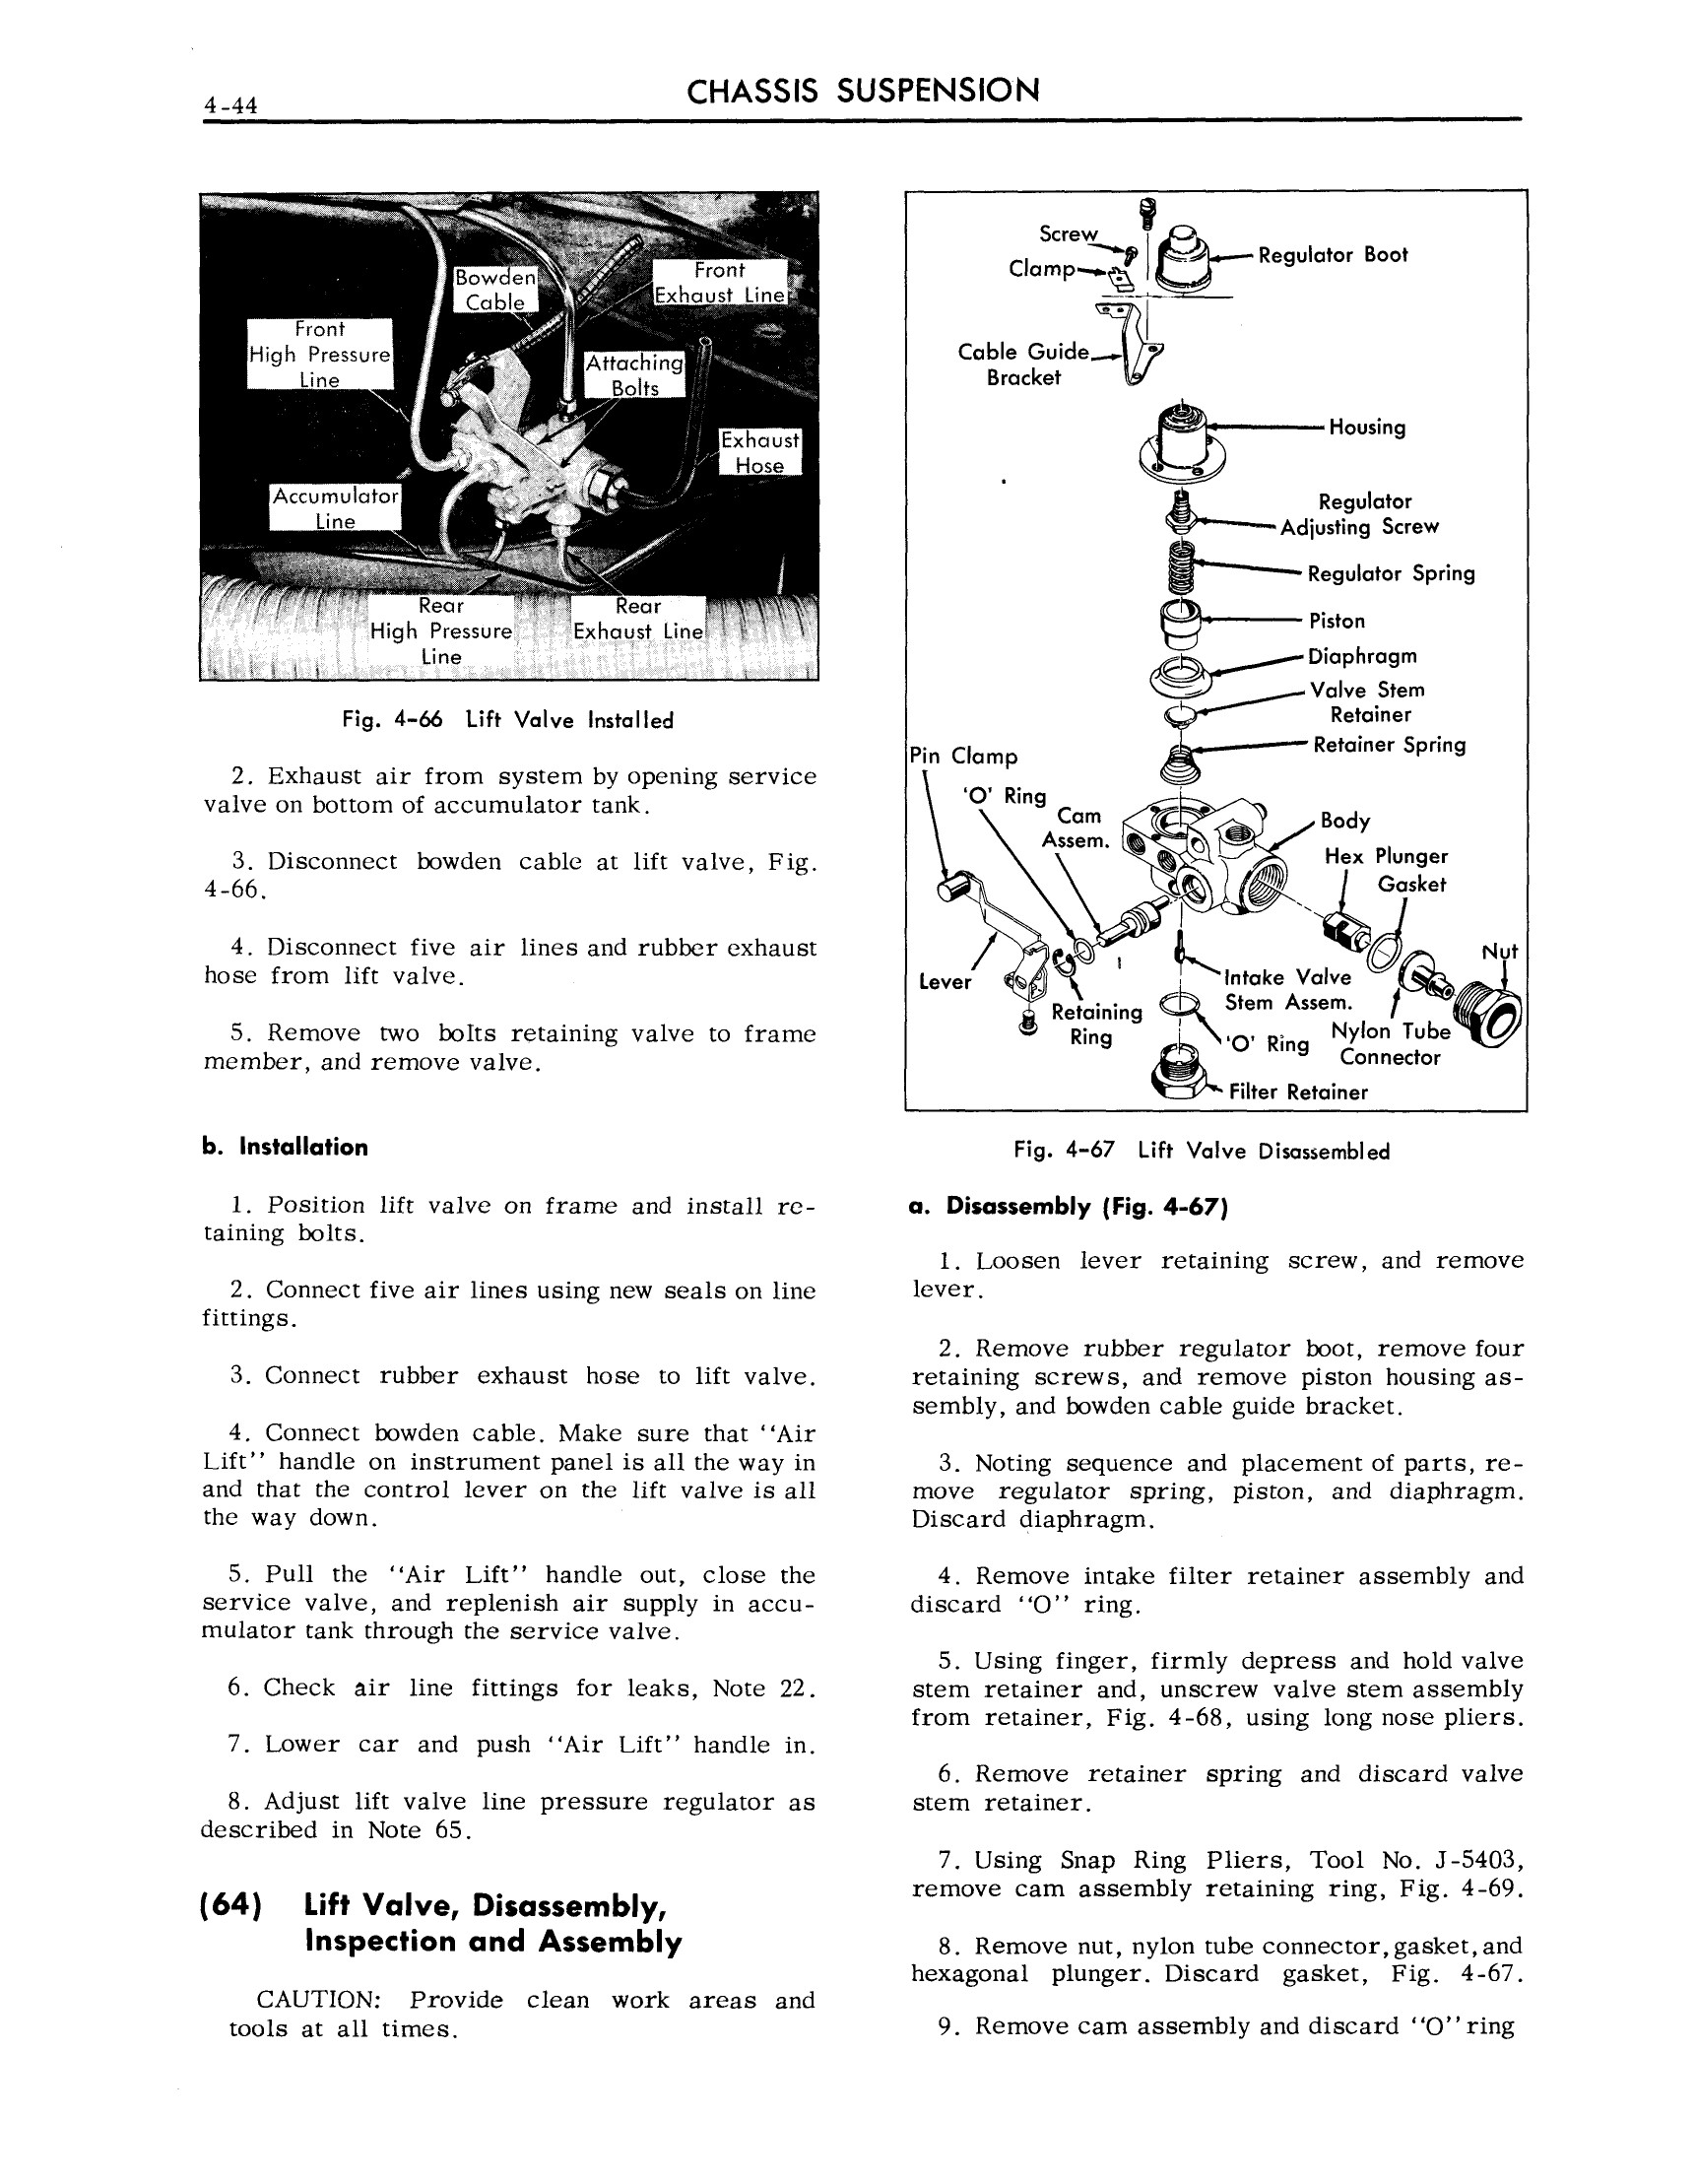 1959 Cadillac Shop Manual- Chassis Suspension Page 44 of 57